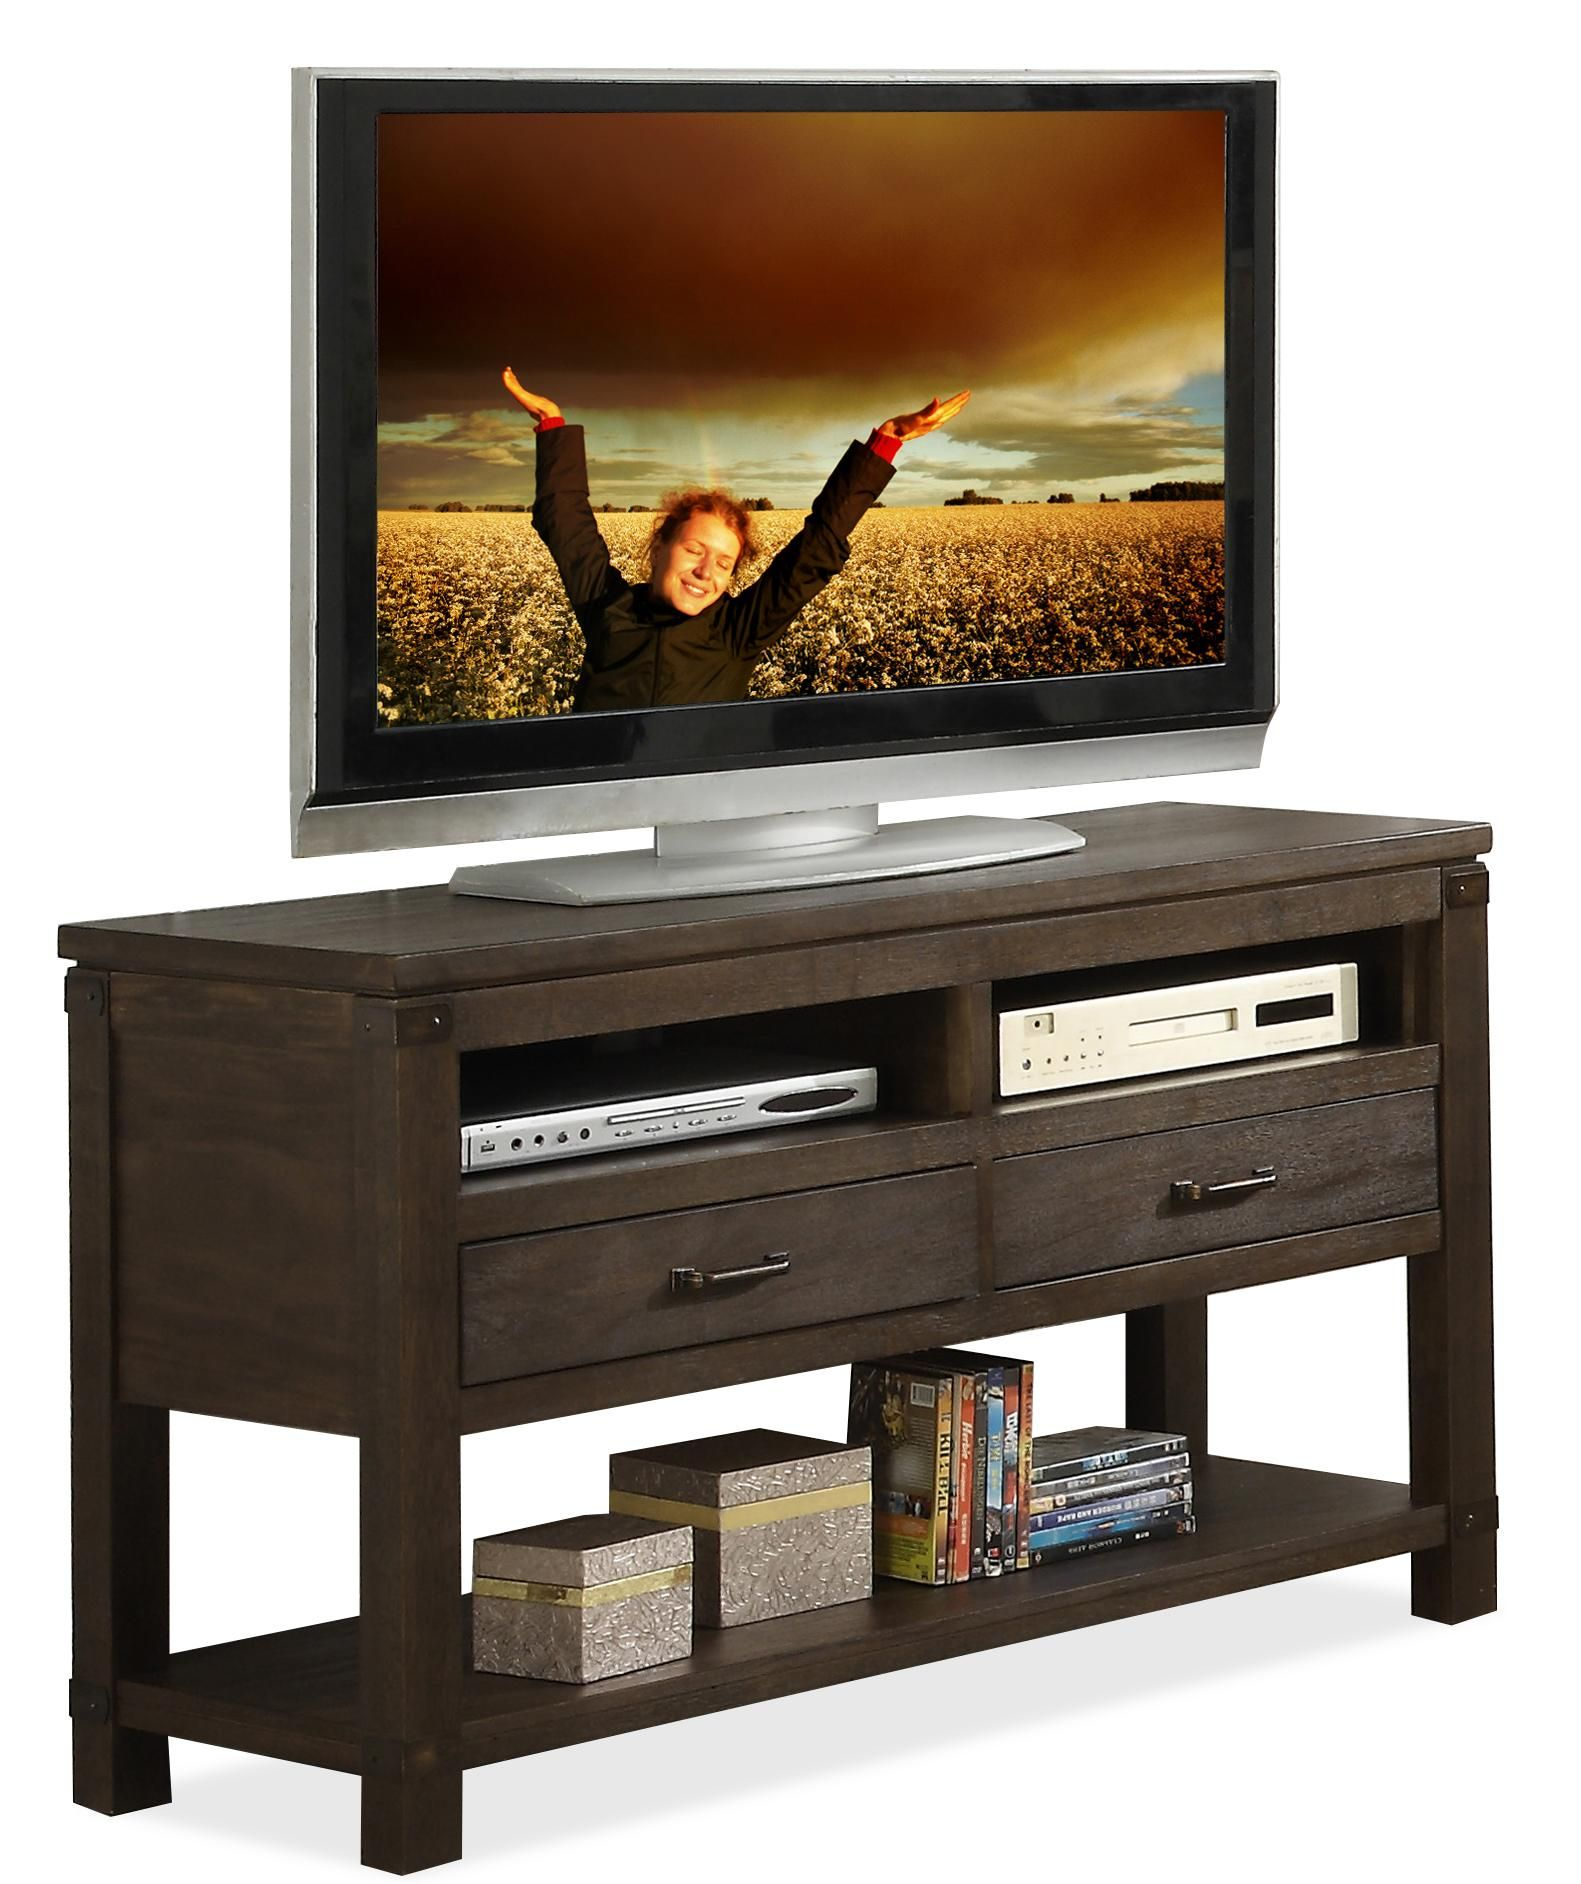 Promenade Console Table By Riverside Furniture At Darvin Furniture Living Room Styles Riverside Furniture Entertainment Furniture Entertainment Center